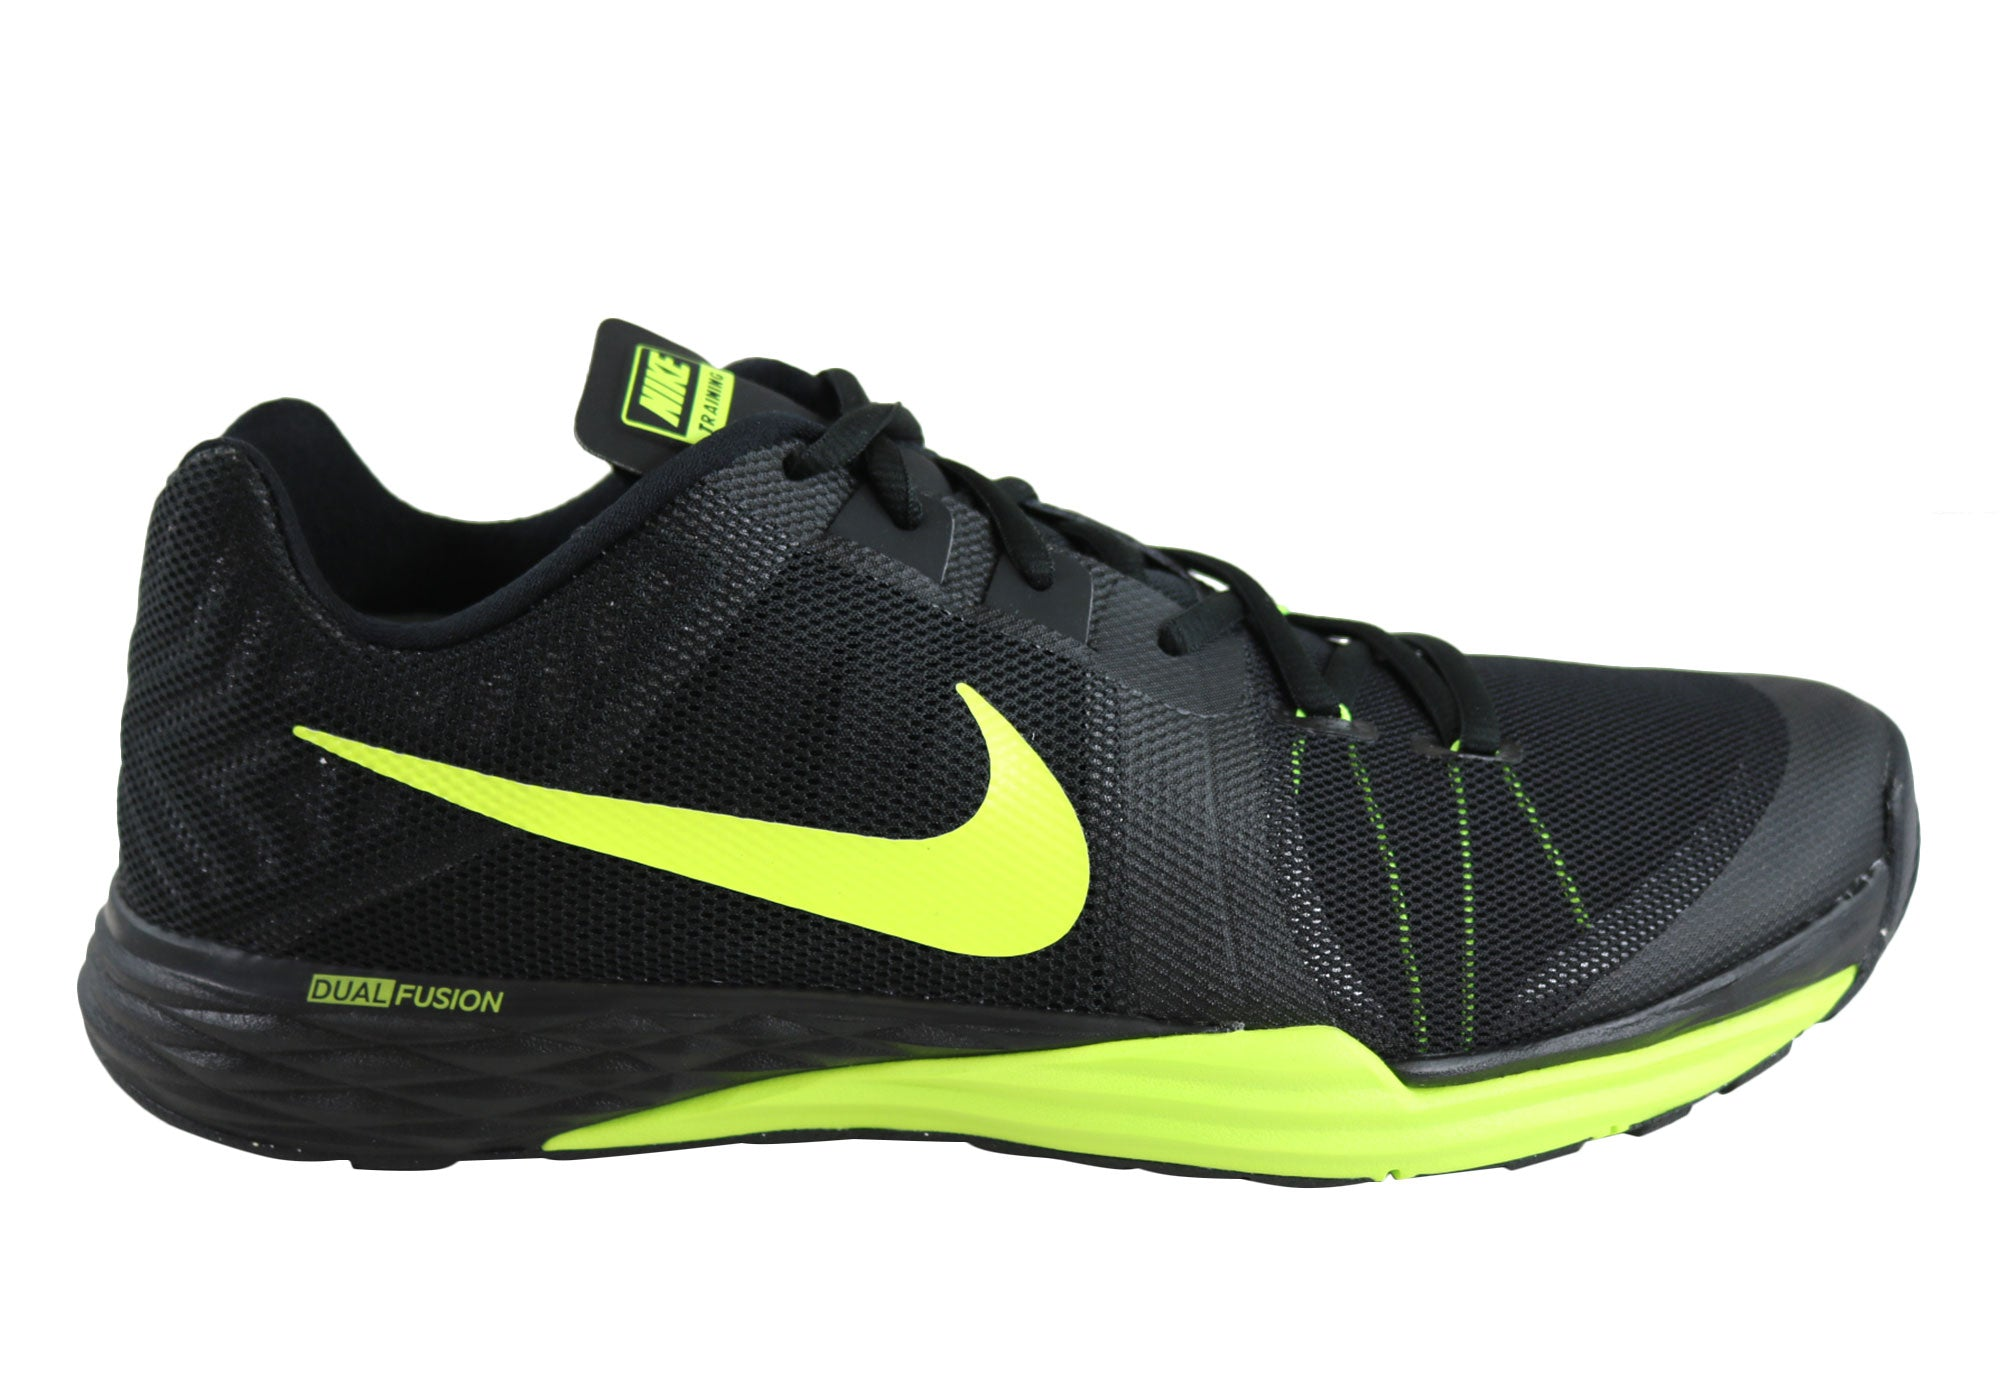 best service 32157 23b85 Details about NEW NIKE MENS TRAIN PRIME IRON DUAL FUSION SPORT CROSS  TRAINING SHOES